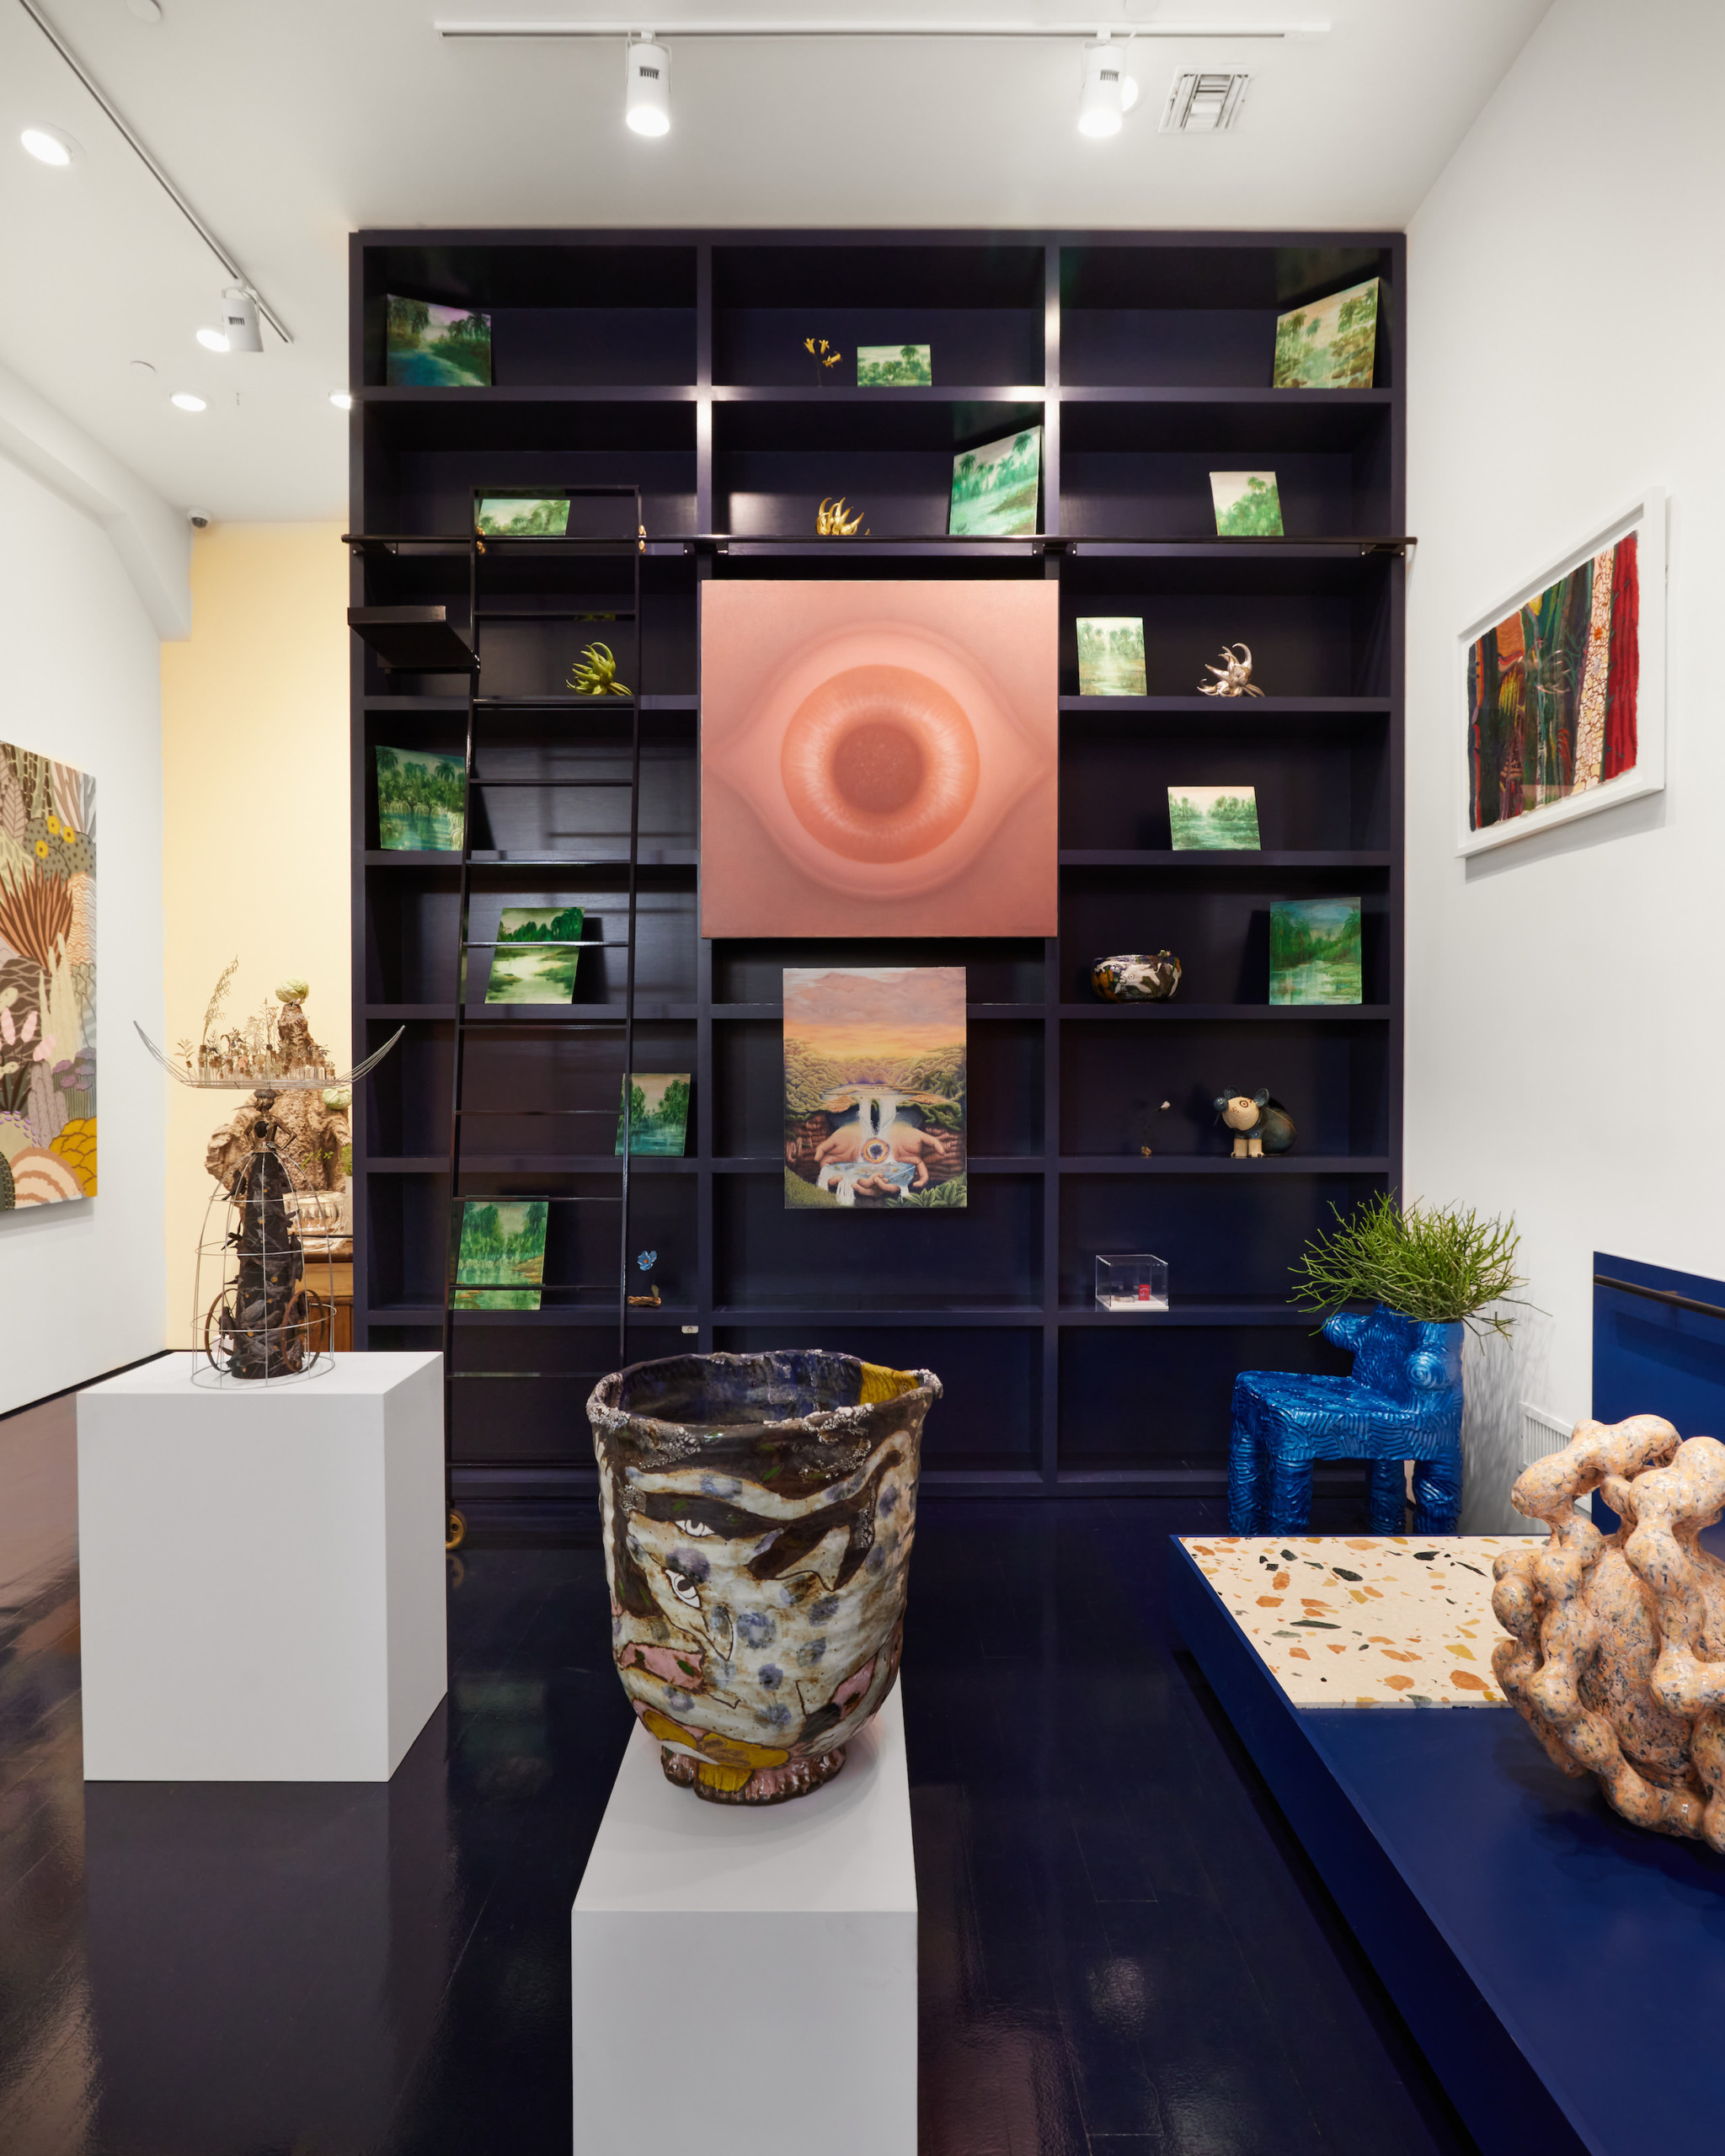 installation view of ridiculous sublime featuring work by Rodolfo Abularach and other artists, with ceramics and paintings